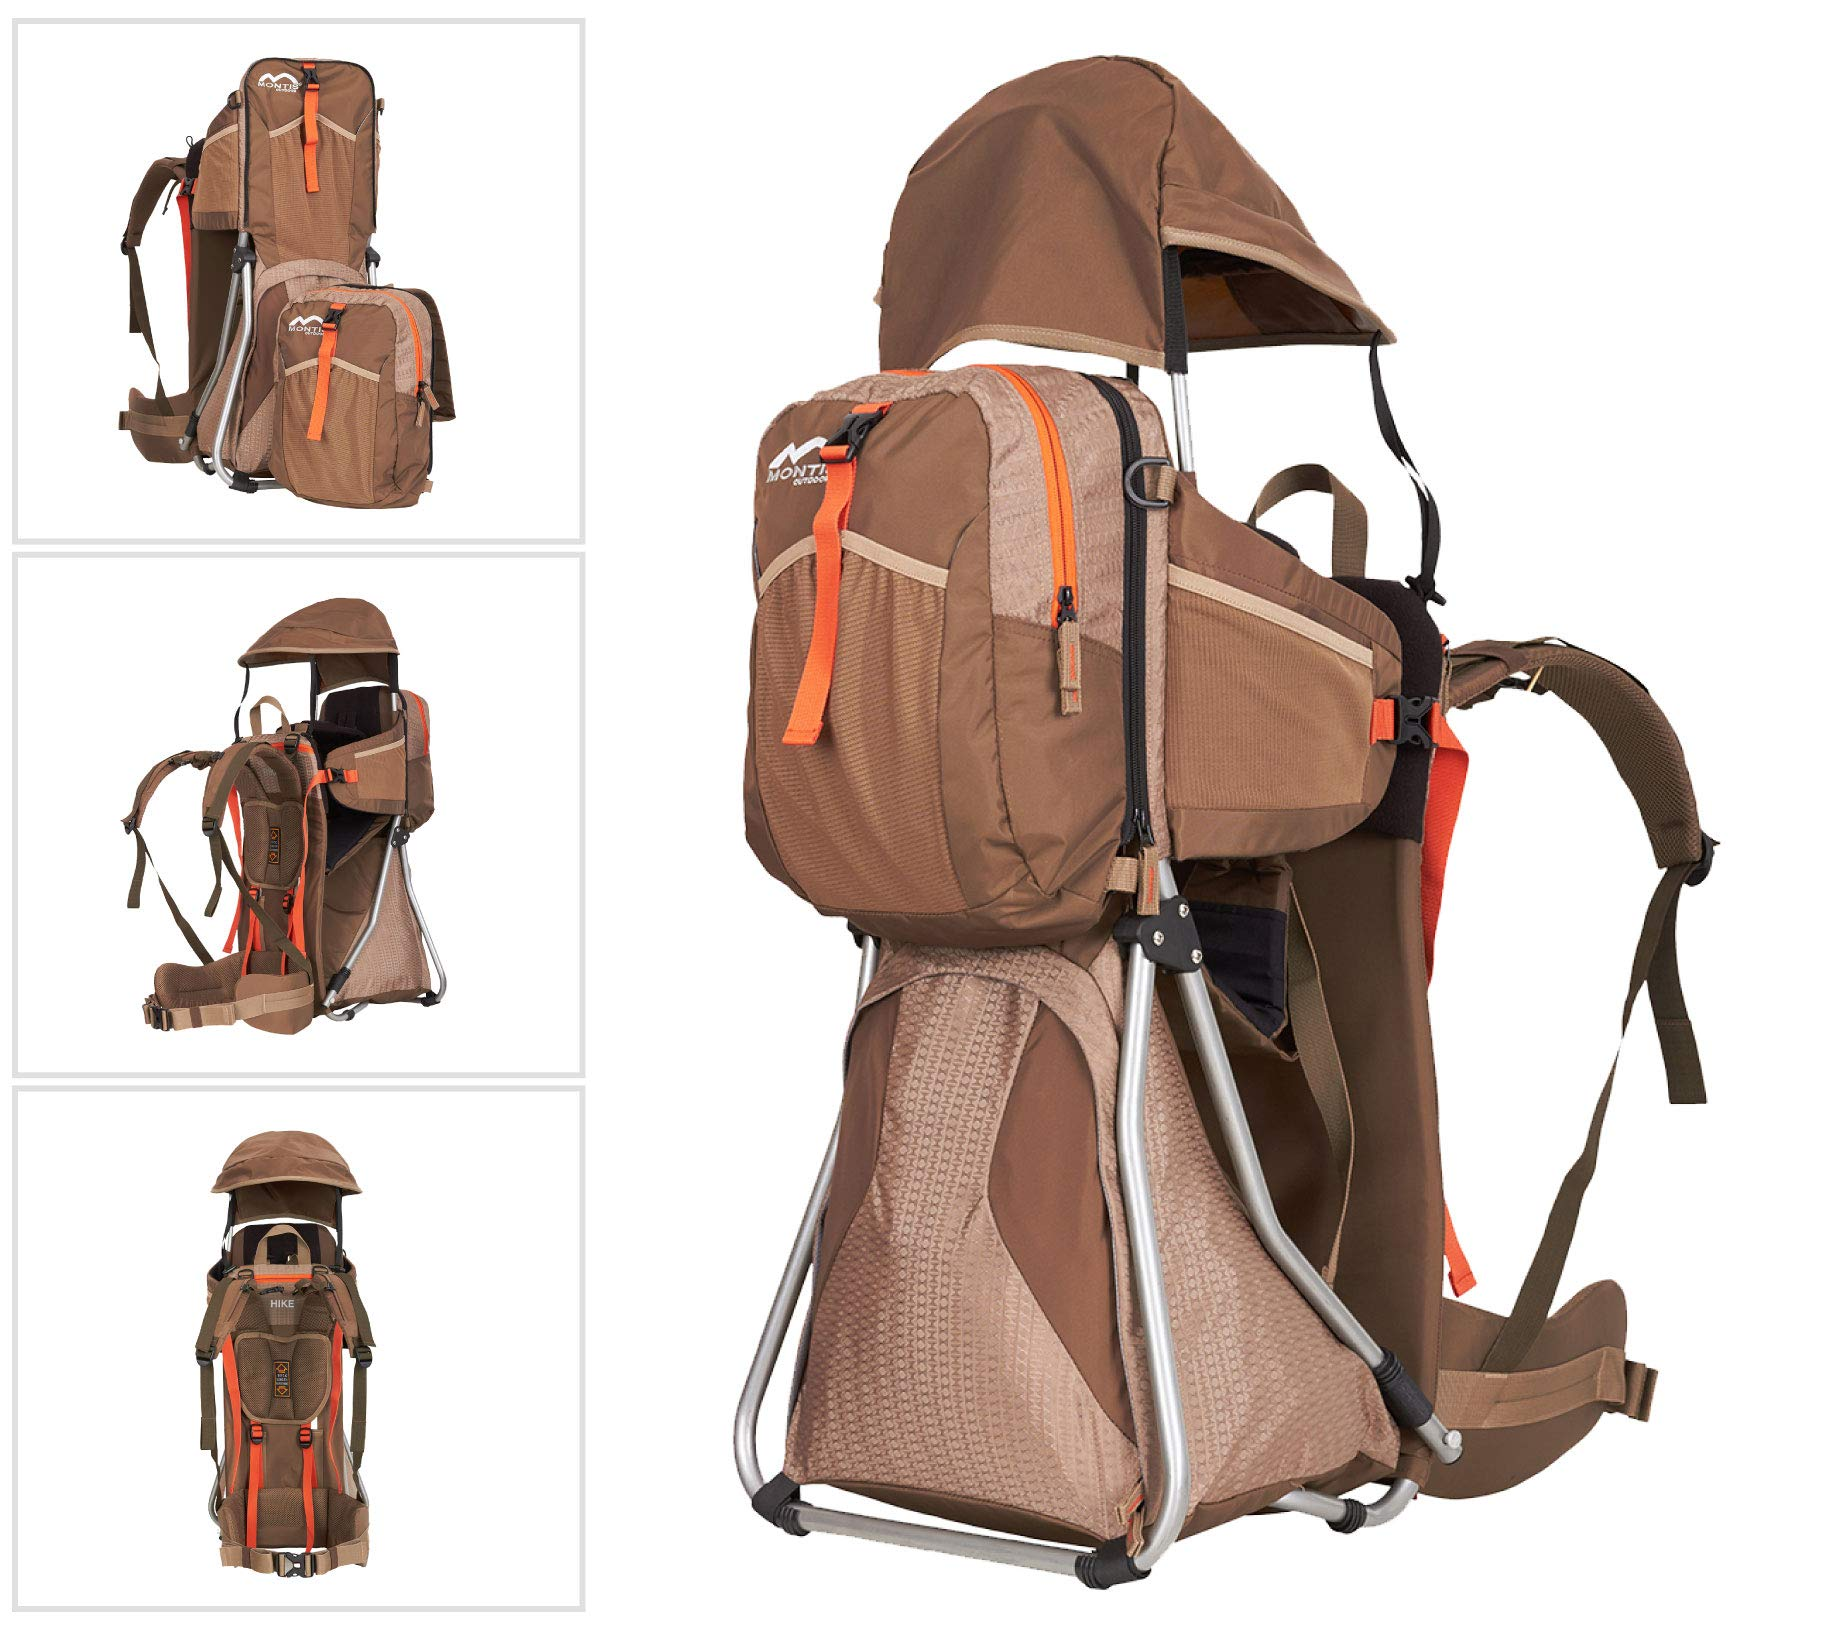 MONTIS HIKE, Premium Back Baby/Child Carrier, Up to 25kg, (mocha) M MONTIS OUTDOOR 89cm high, 37cm wide | up to 25kg | various colours | 28L seat bag Laminated and dirt-repellant outer material | approx. 2.2kg (without extras) Fully-adjustable, padded 5-point child's safety harness | plush lining, raised wind guard, can be filled from both sides | forehead cushion 1